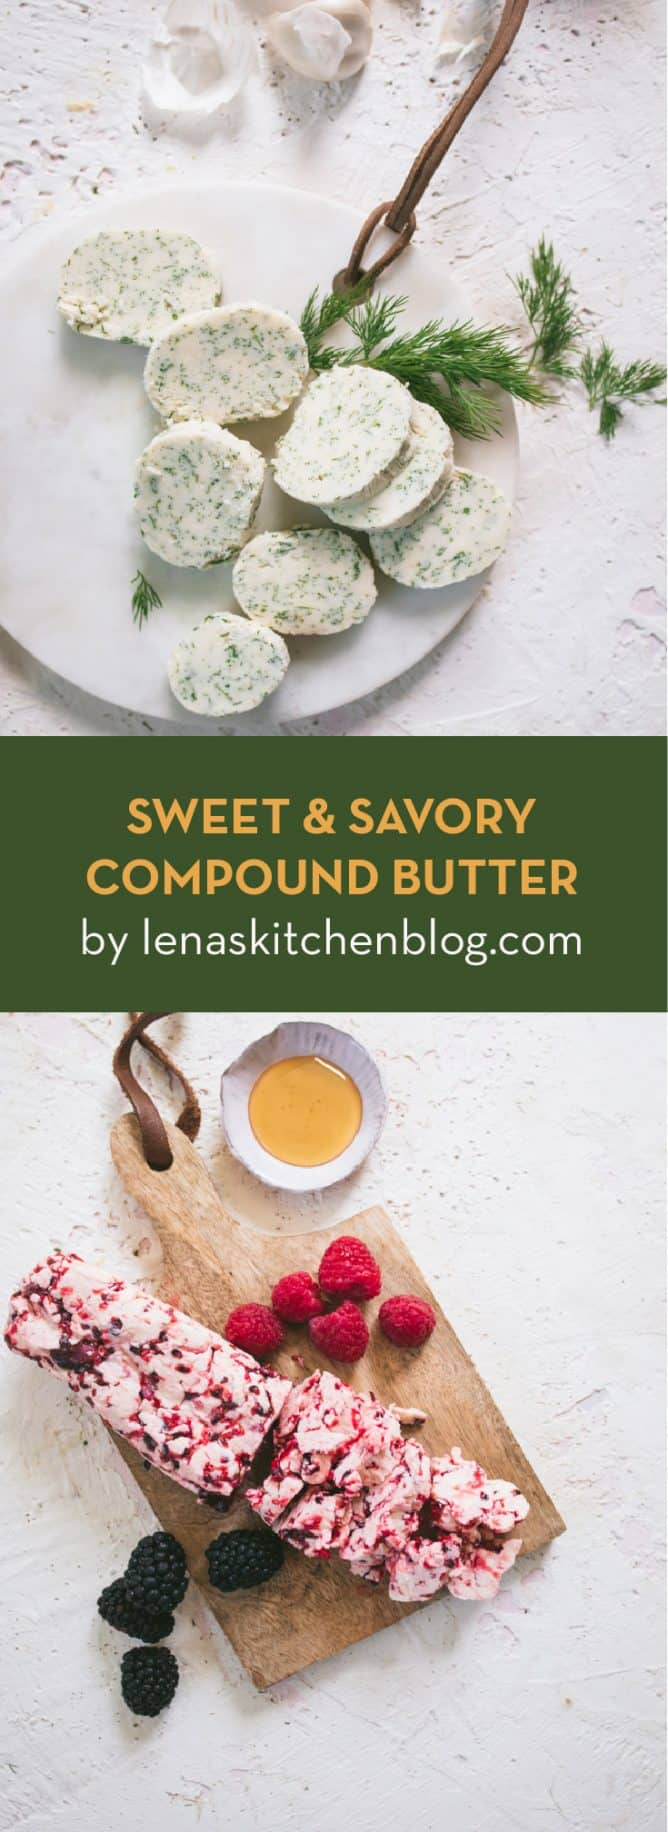 sweet and savory compound butter